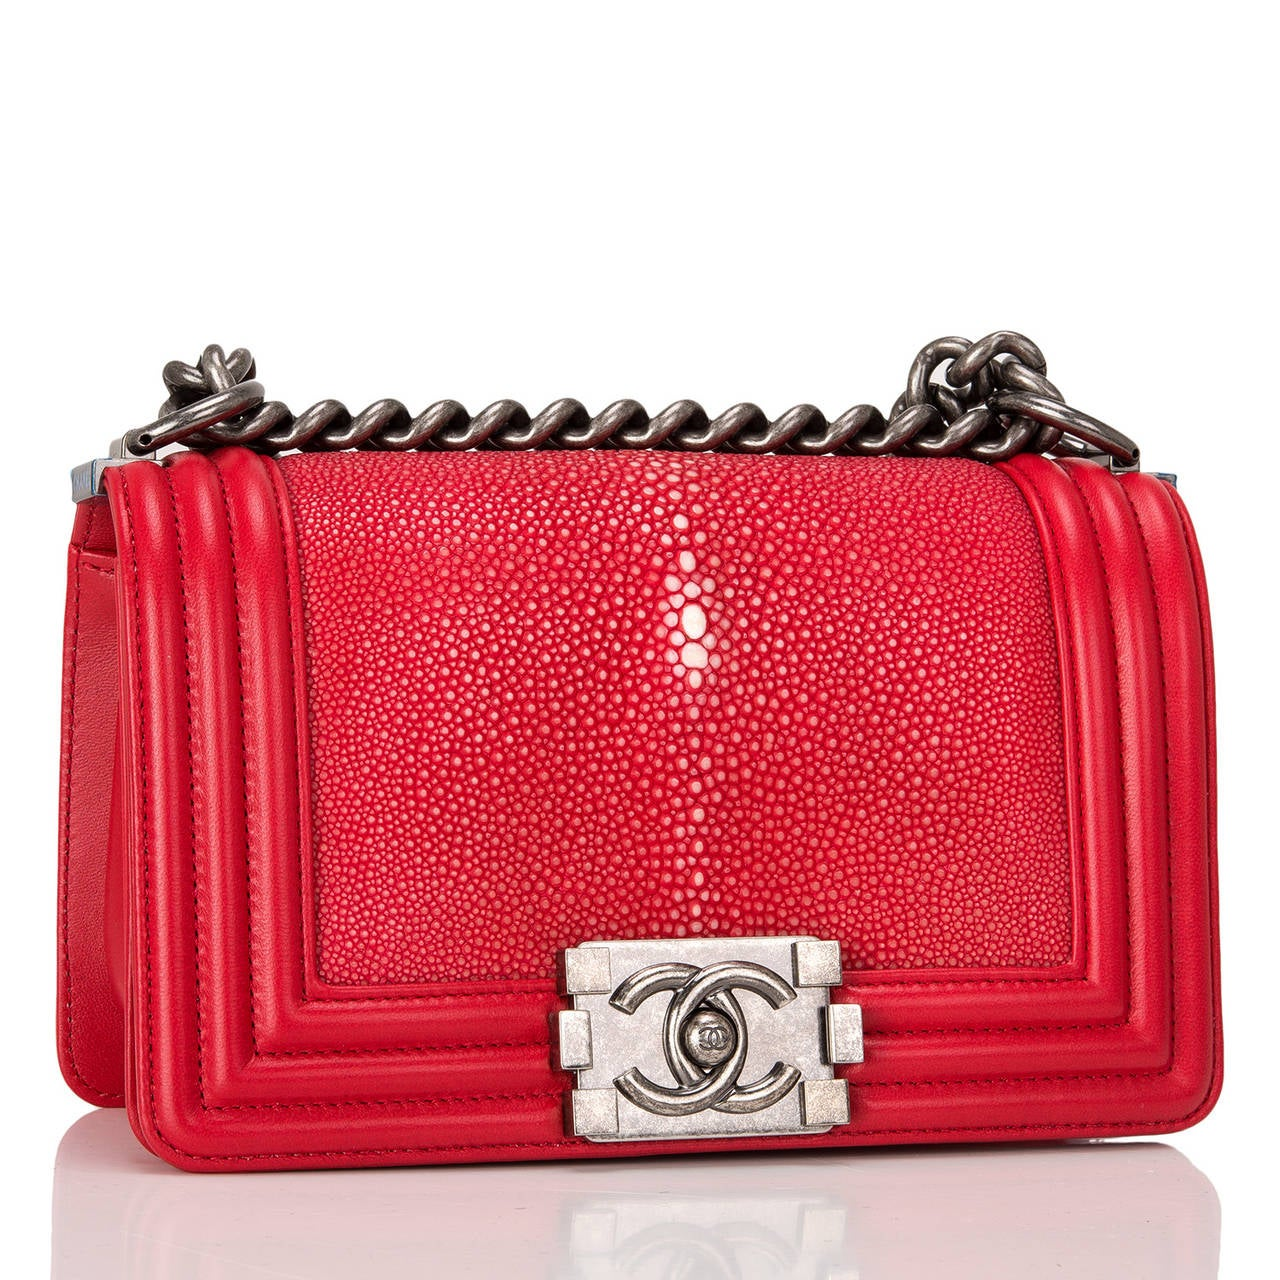 This limited edition Small Boy bag is exceptional in red stingray, accented by red lambskin leather and aged ruthenium hardware. The bag has a full front flap with the Boy Chanel signature CC push lock closure and aged ruthenium chain link and red